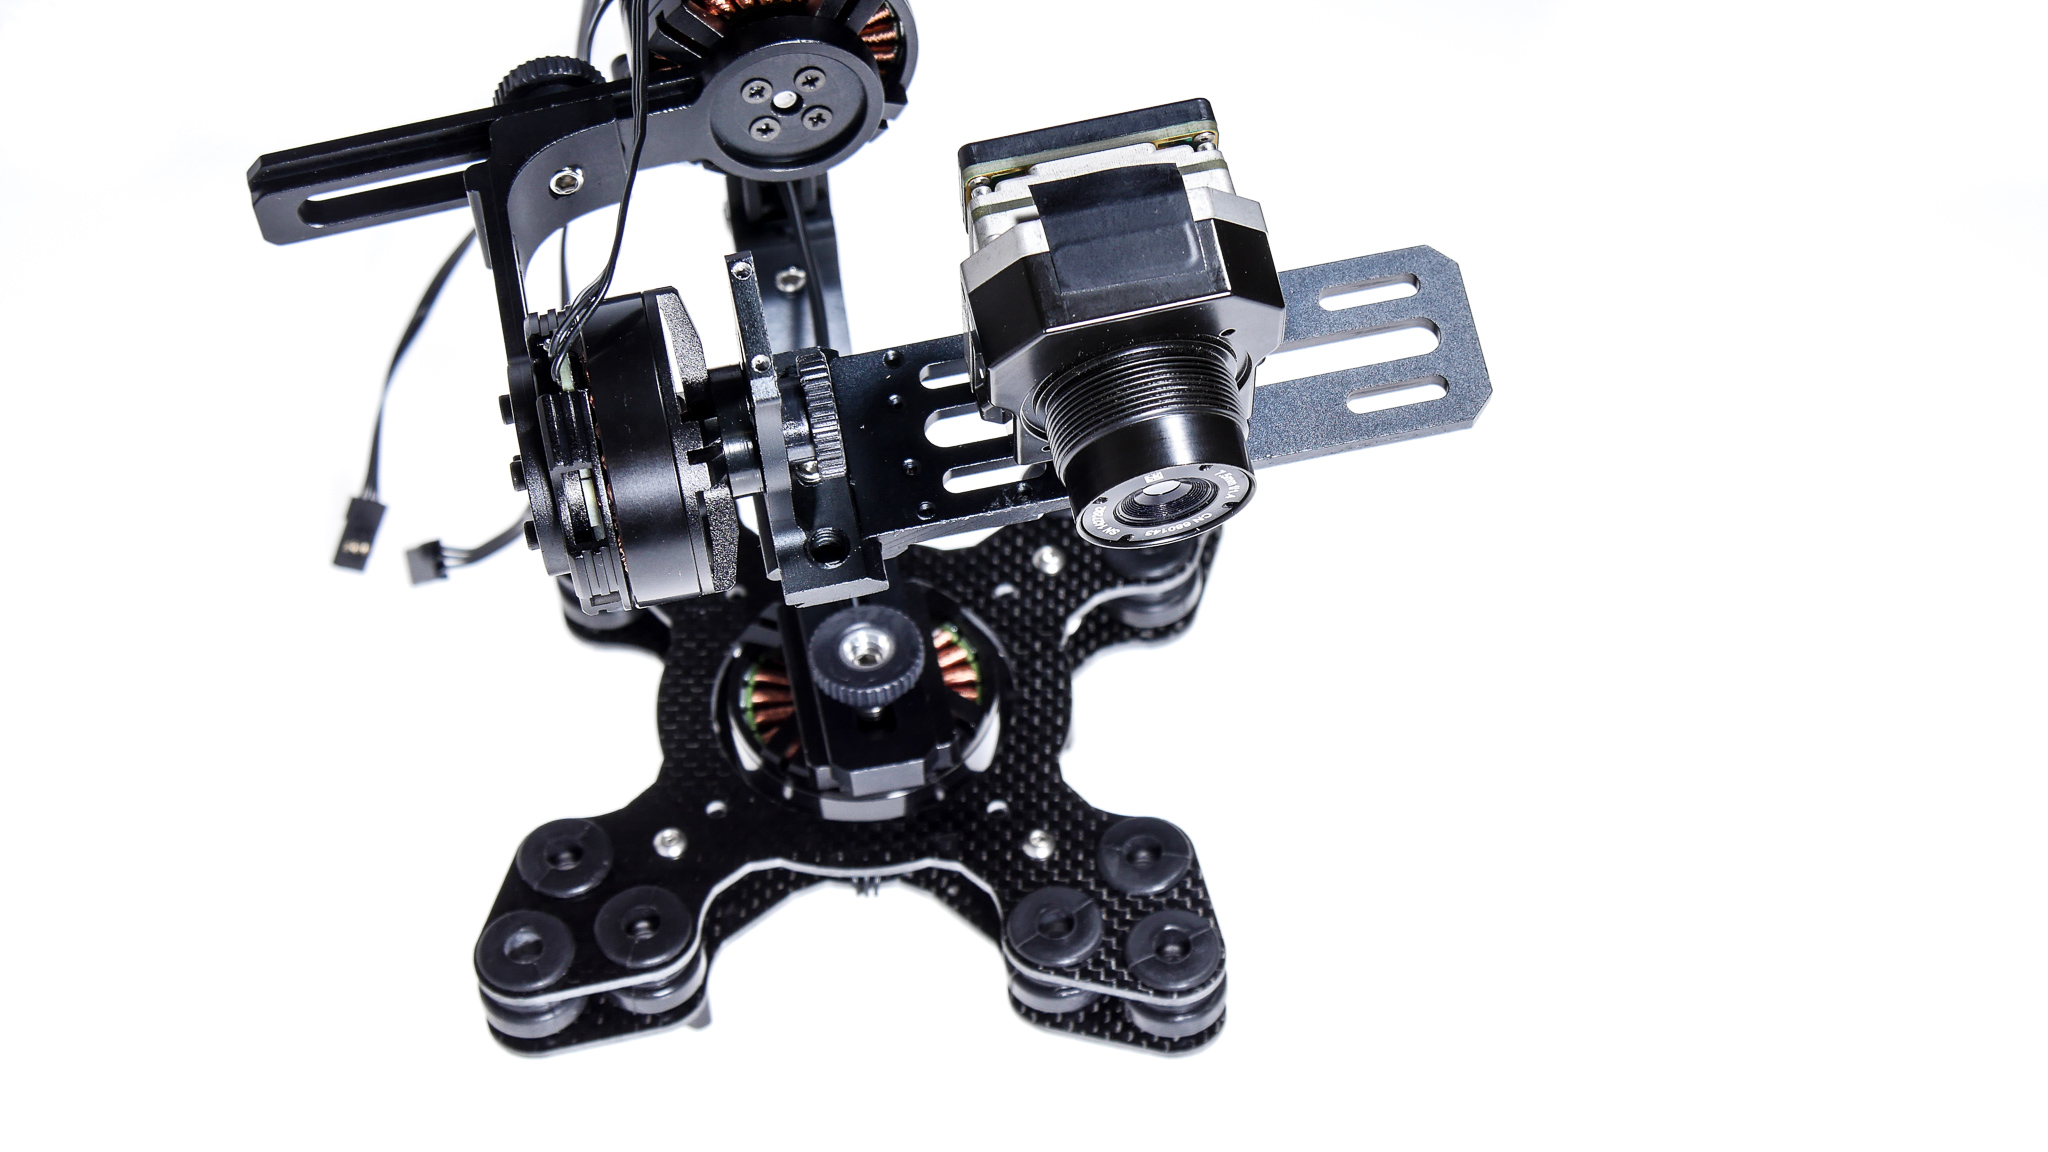 UX 1 – 3 Axis Brushless Gimbal Kit for FLIR and Universal Aerial Applications